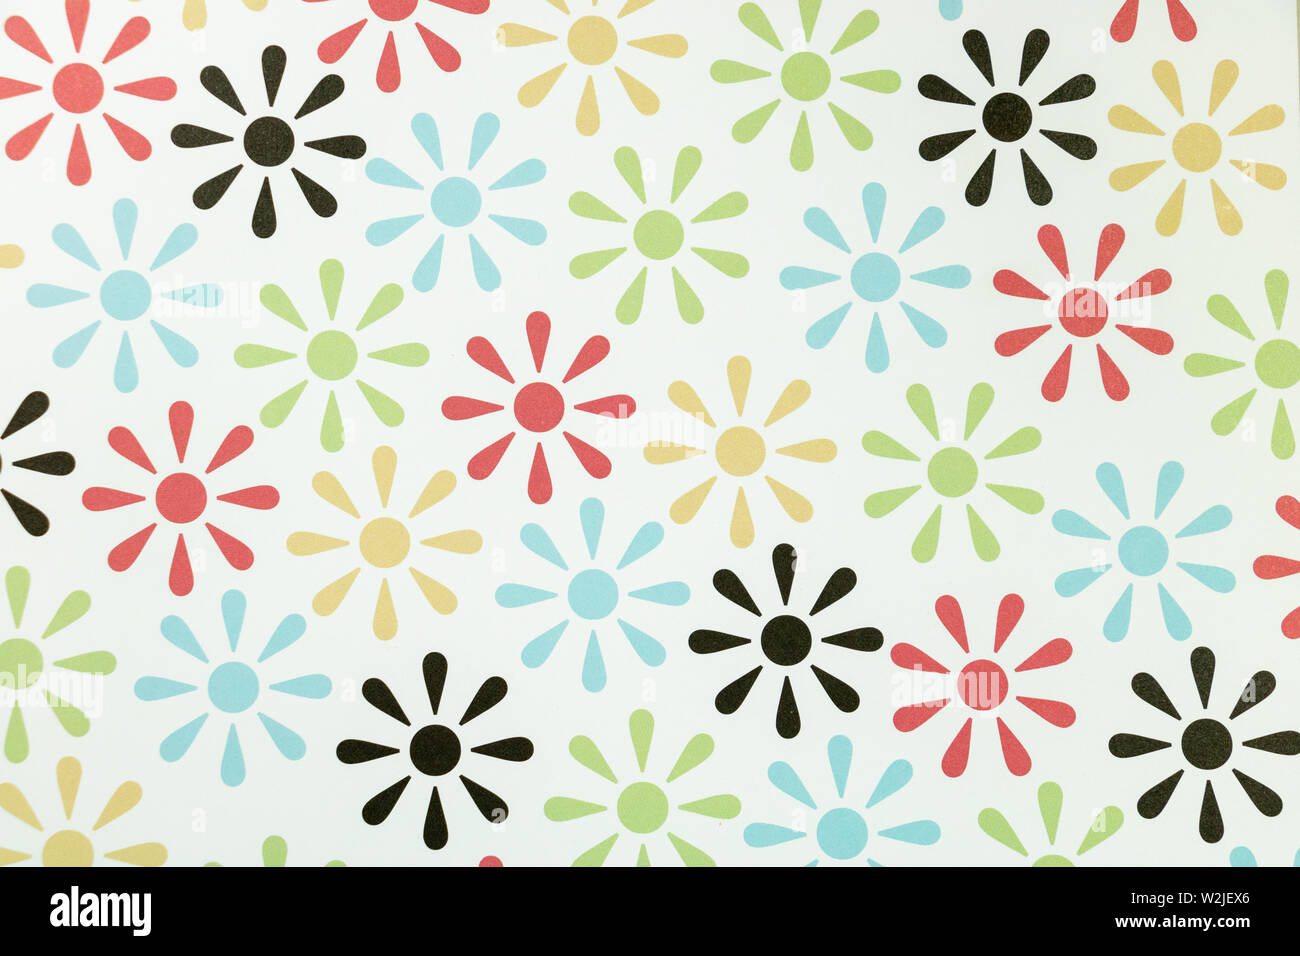 Floral 70s Wallpaper Background Stock Photos Floral 70s